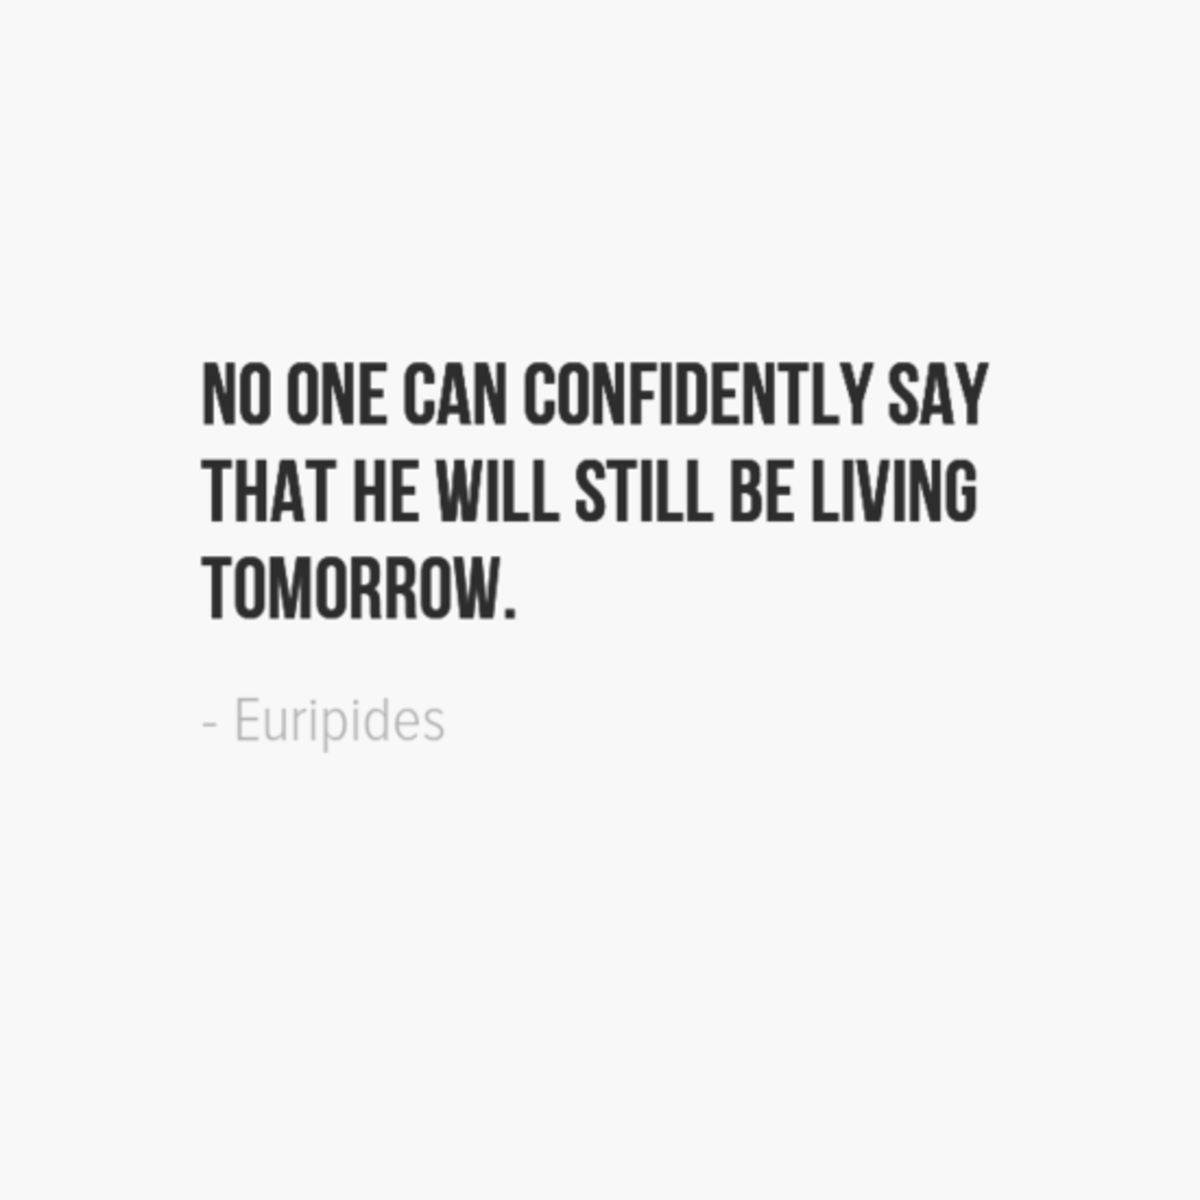 No one can confidently say that he will still be living tomorrow. ~Euripides